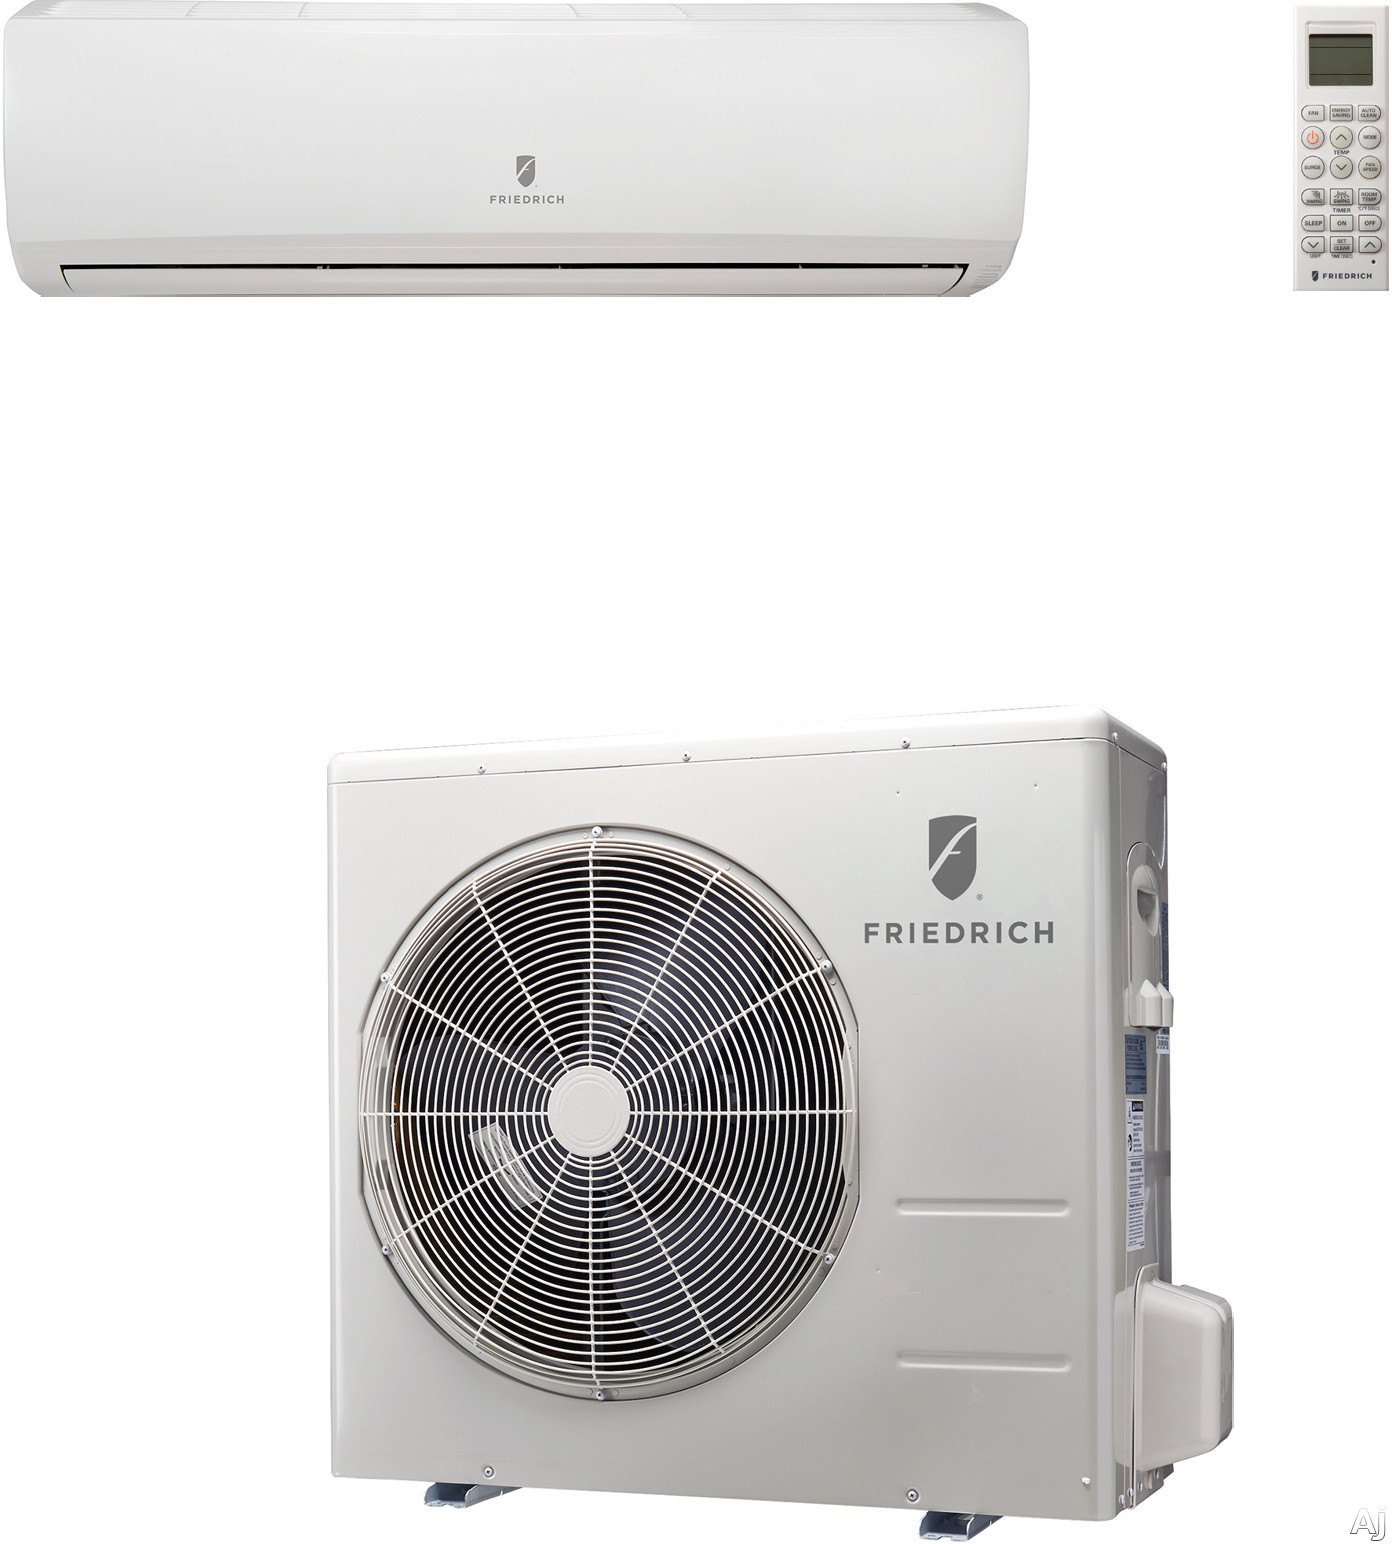 Friedrich M36YJ 33,000 BTU Single Zone Wall-Mount Ductless Split System with 35,200 BTU Heat Pump, 8.2 EER, 16.5 SEER and R410A Refrigerant (MW36Y3J Indoor/MR36Y3J Outdoor)